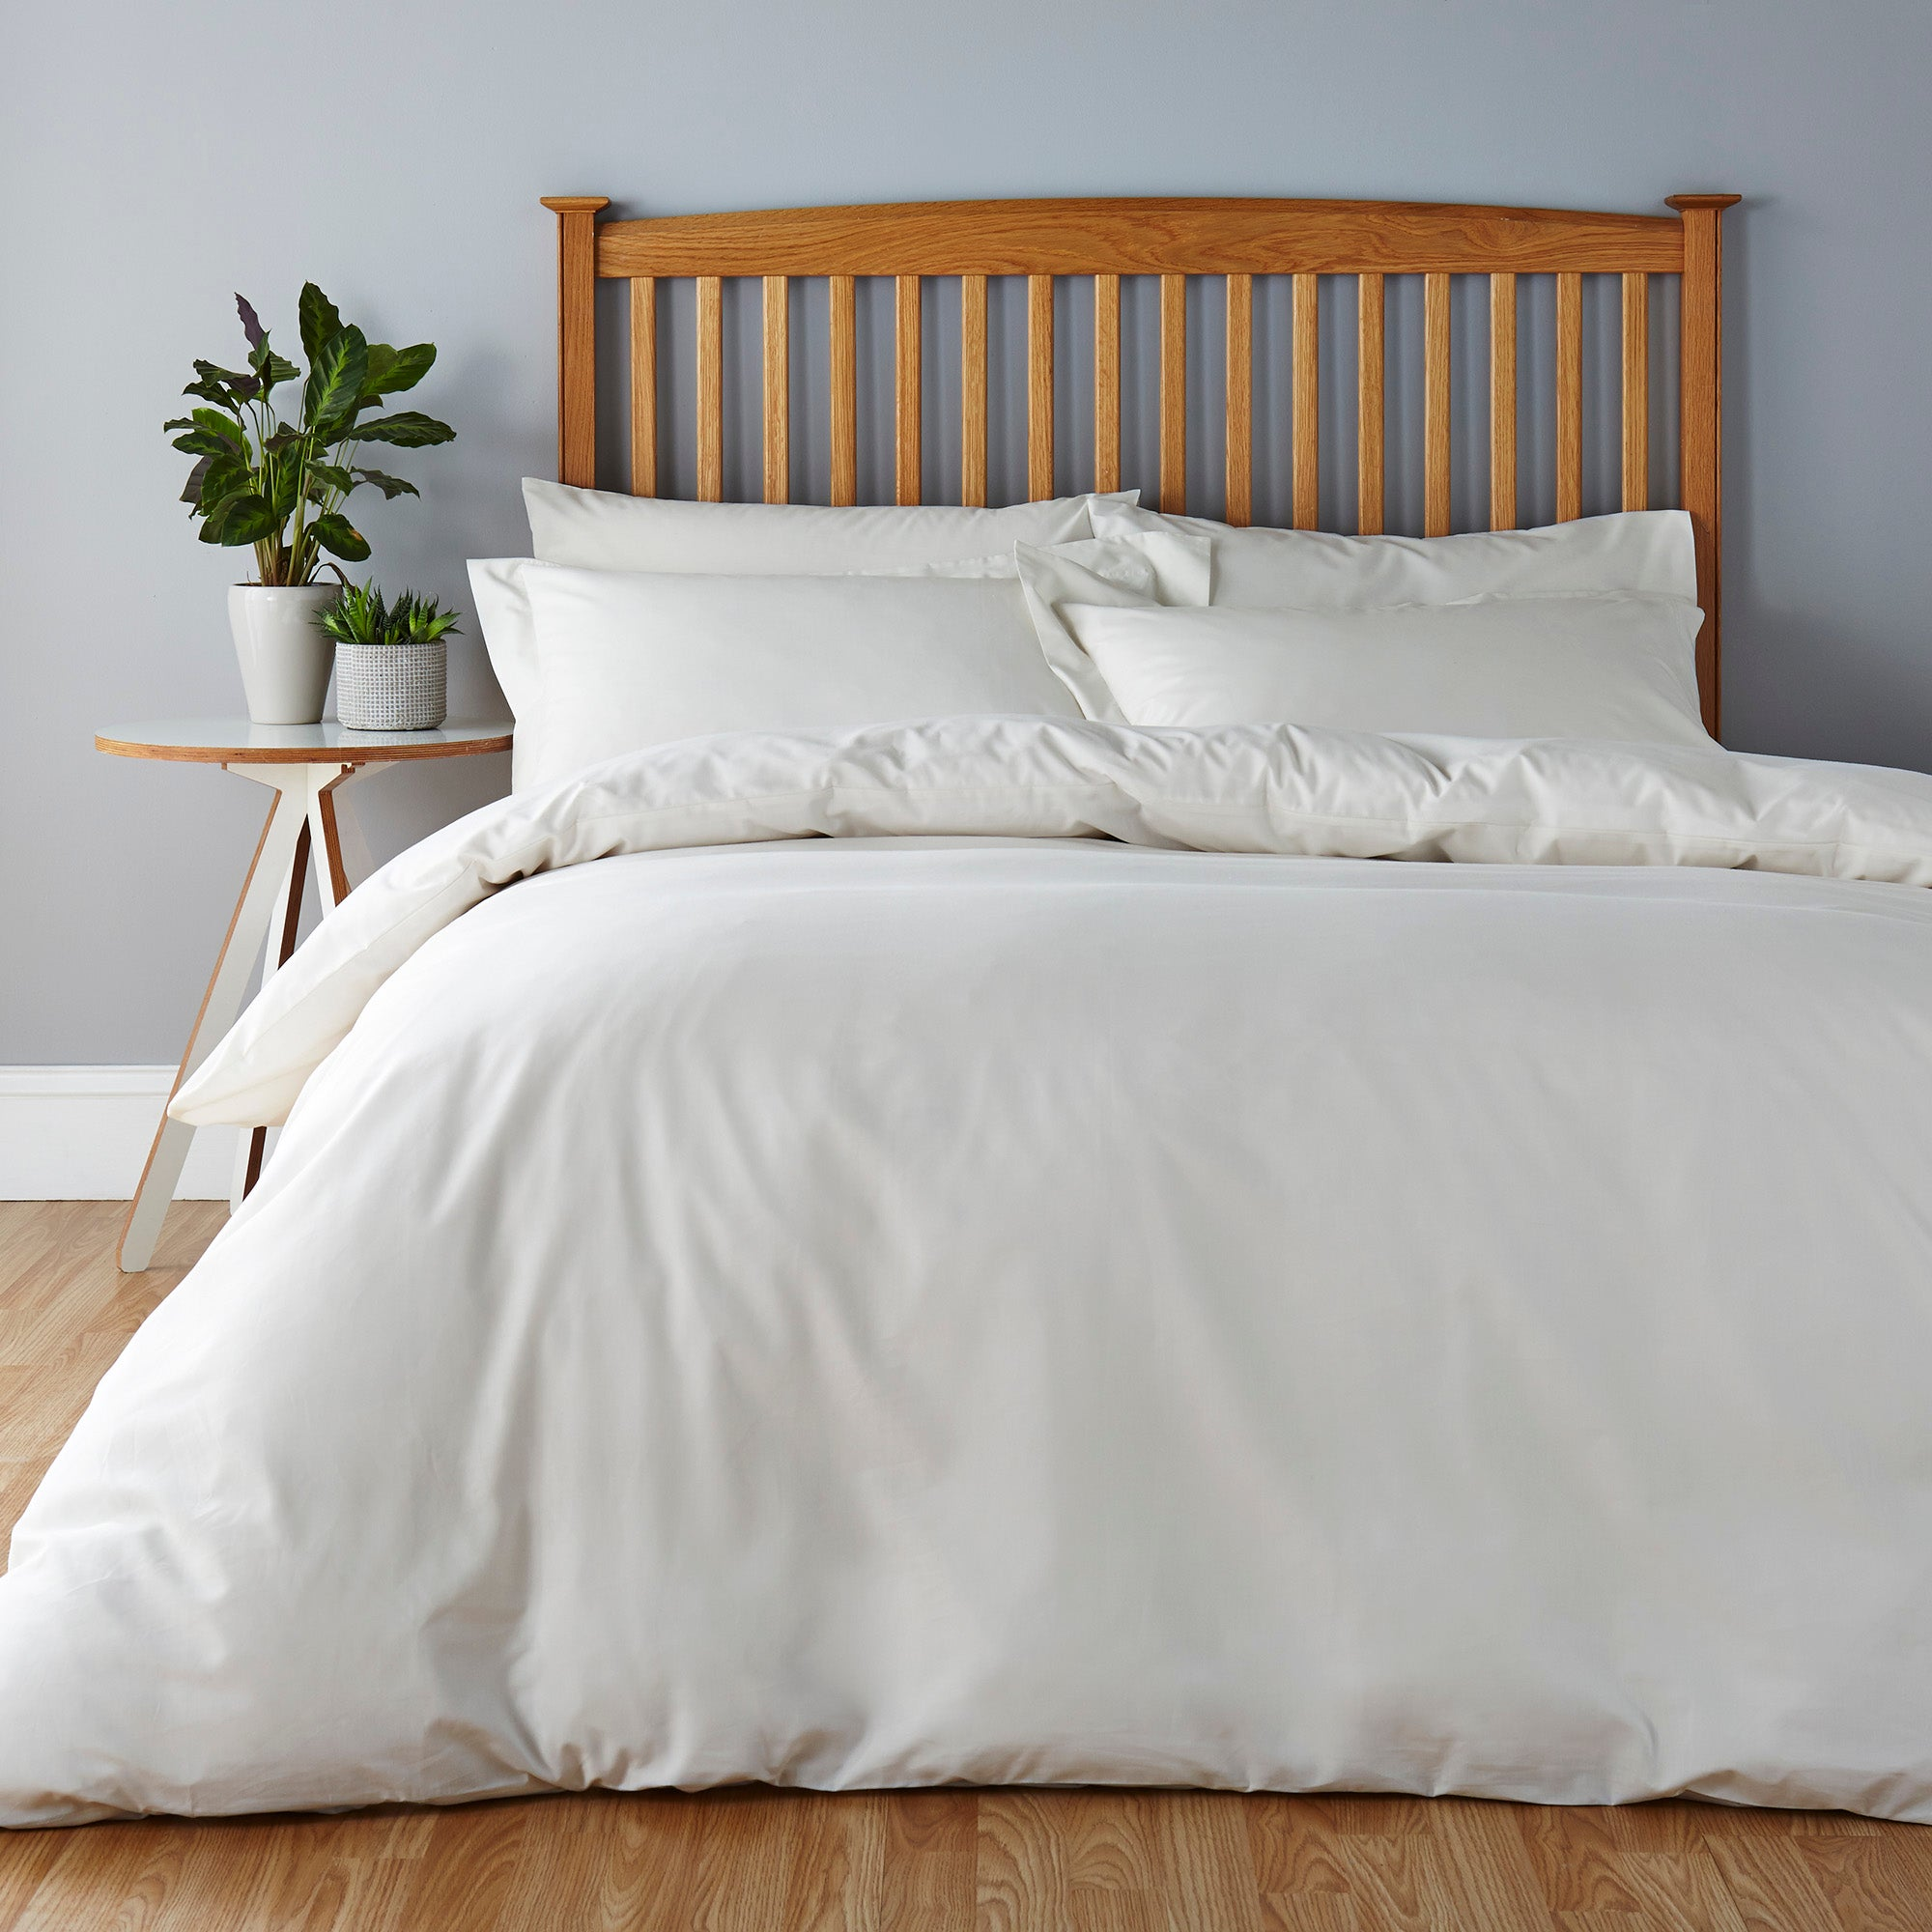 Easycare Plain Dye Ivory Bed Linen Collection